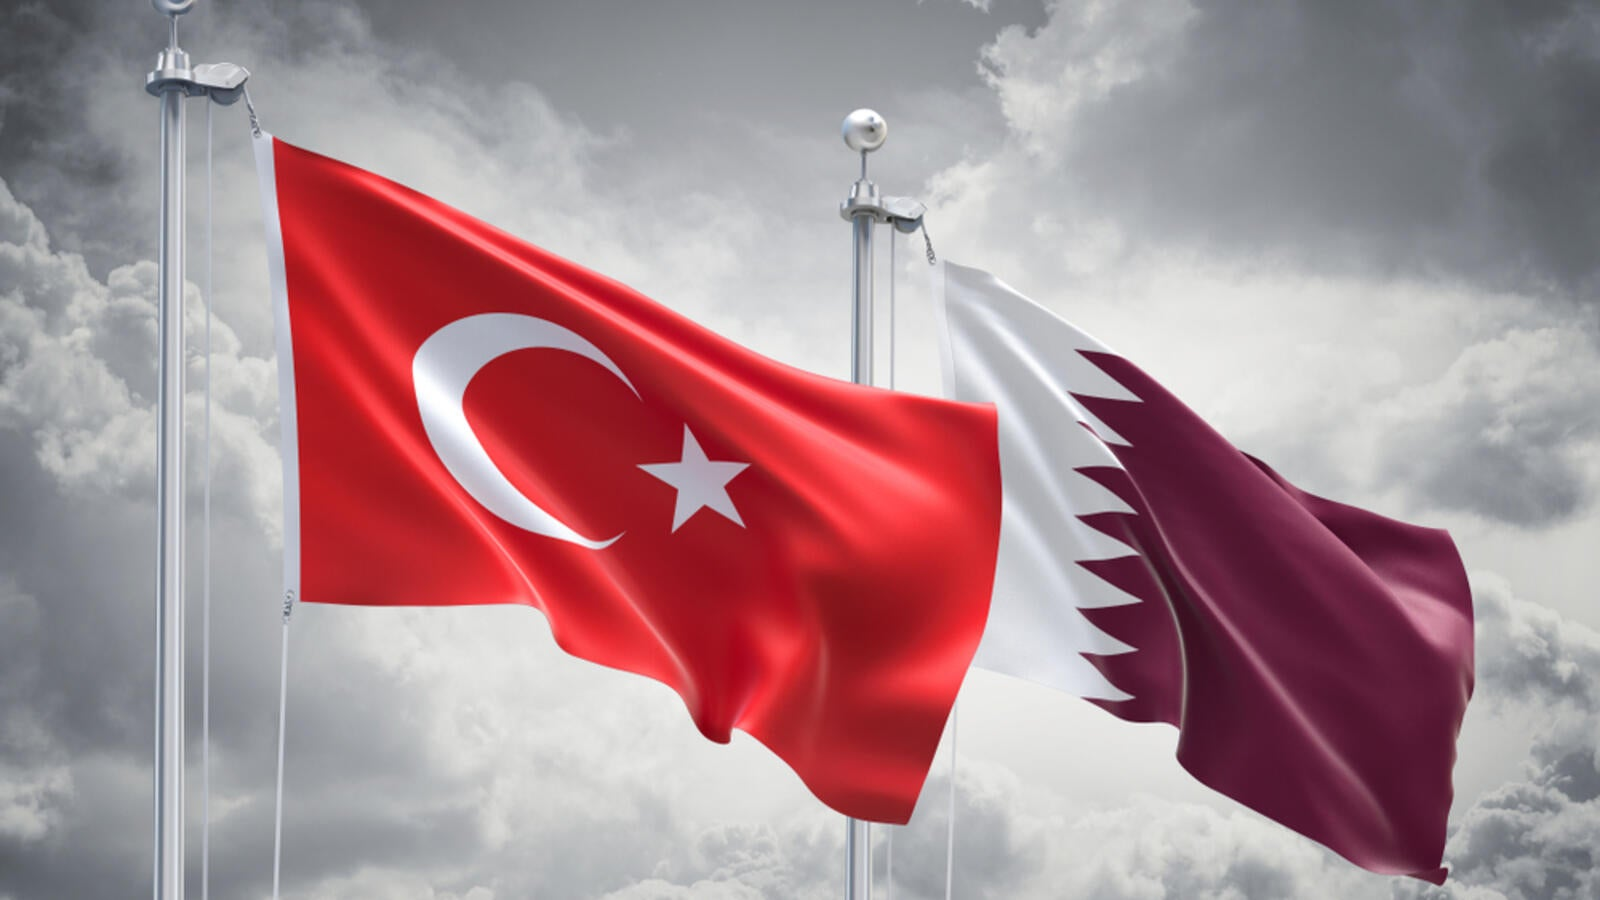 Turkey: Good old Qatar comes to the rescue